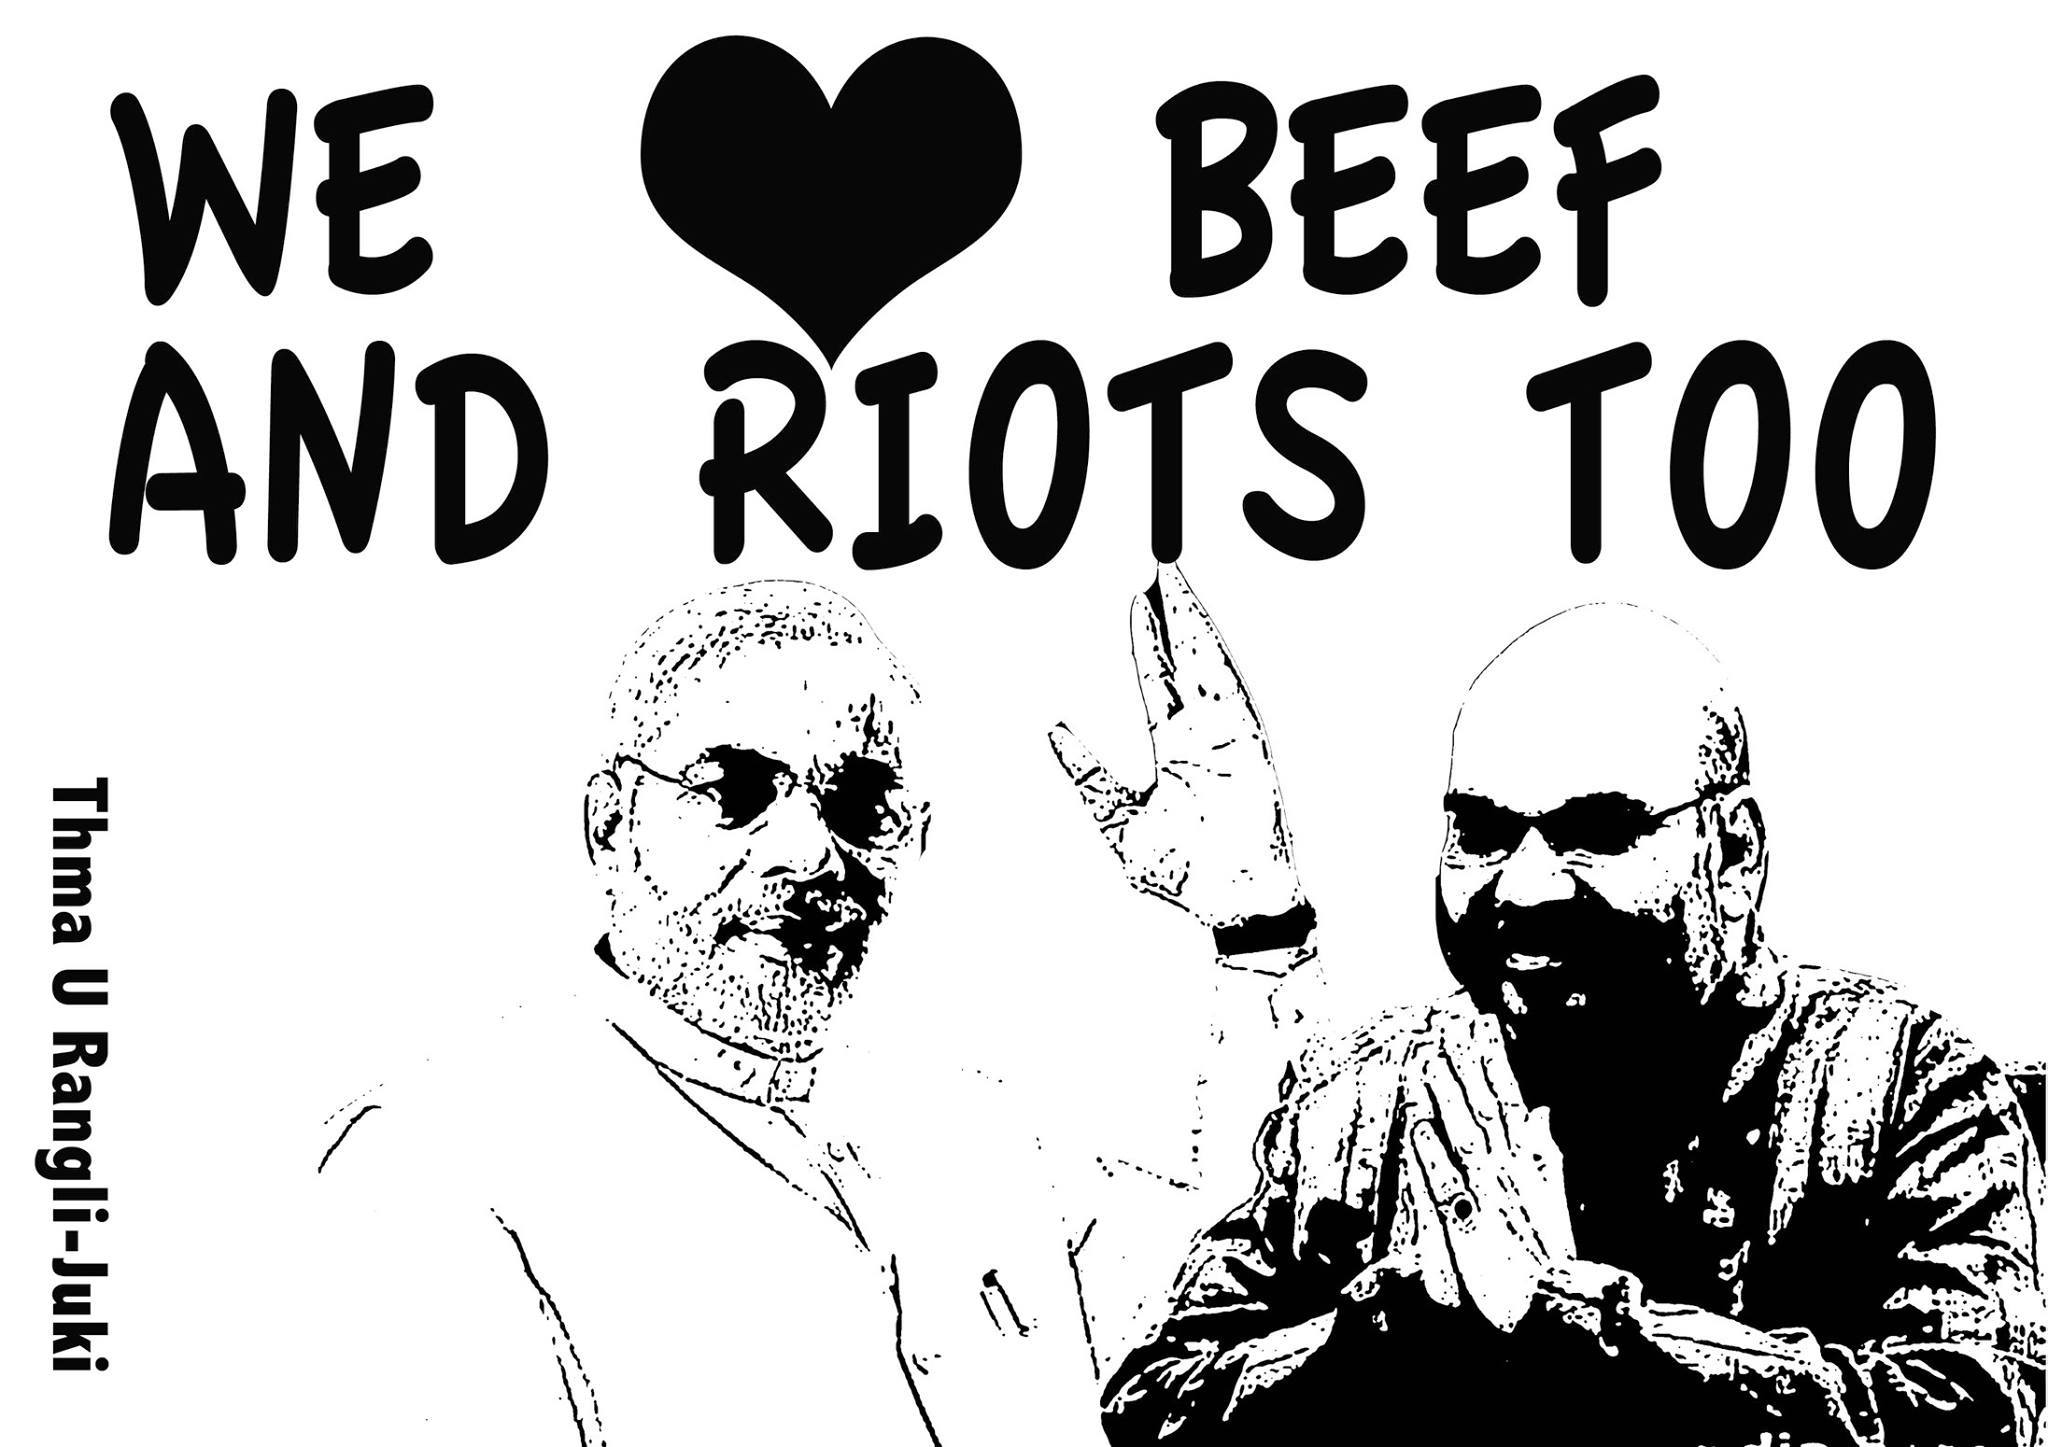 We Love Beef & Riots too - a poster by Thma U Rangli Juki